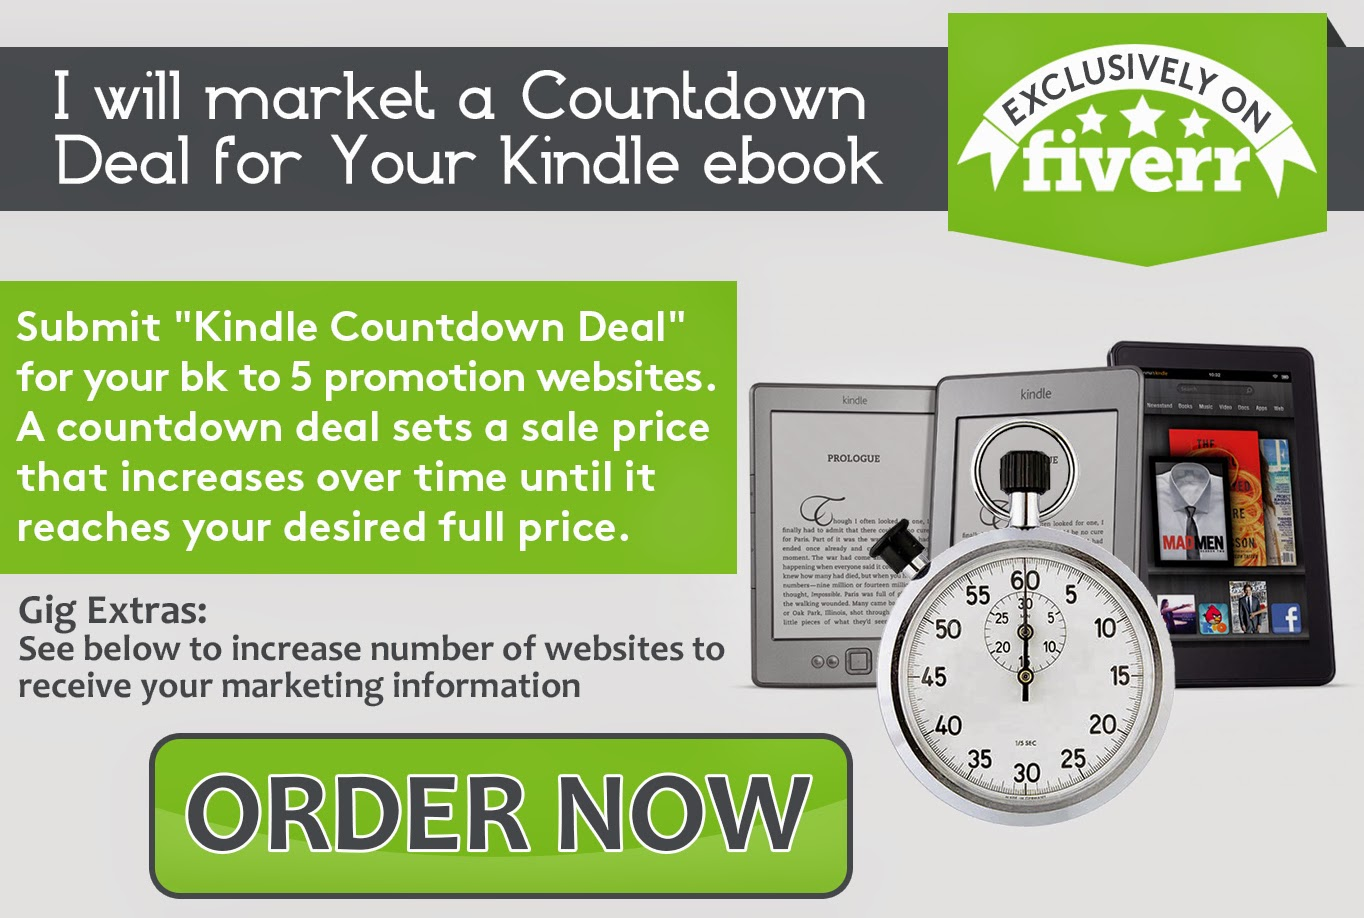 https://www.fiverr.com/dragonfly333/promote-your-kindle-ebook